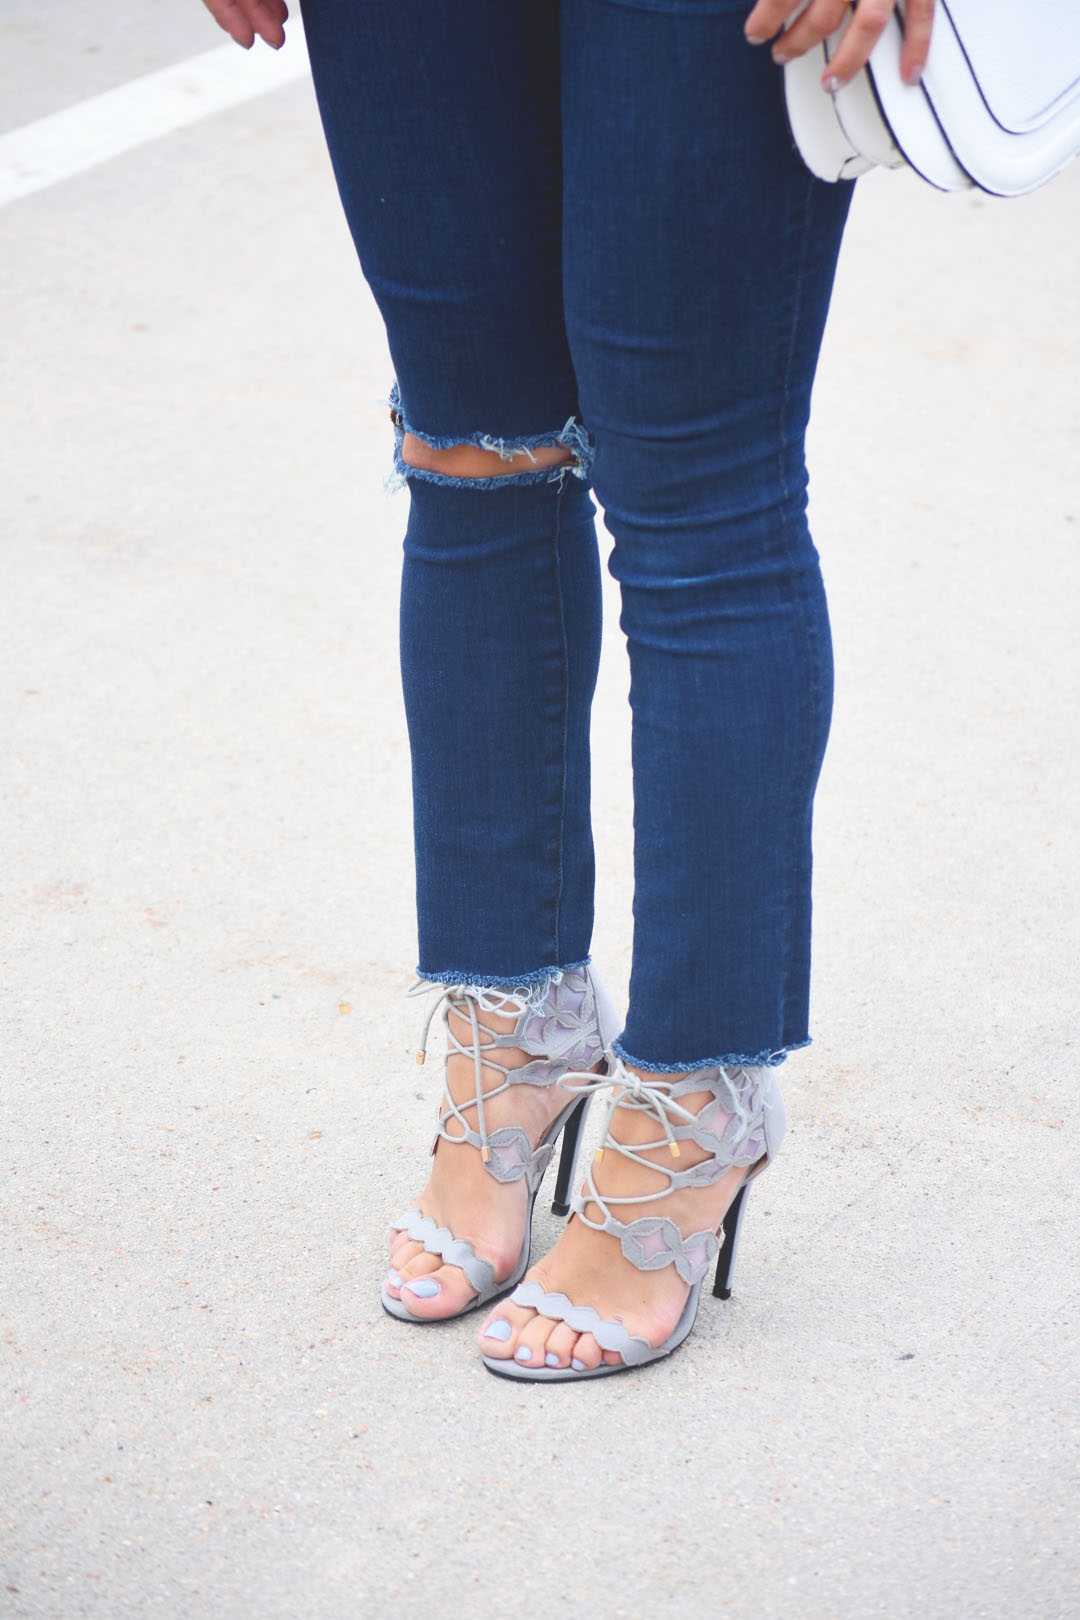 Madewell ripped jeans, and Public Desire grey lace up heeled sandals